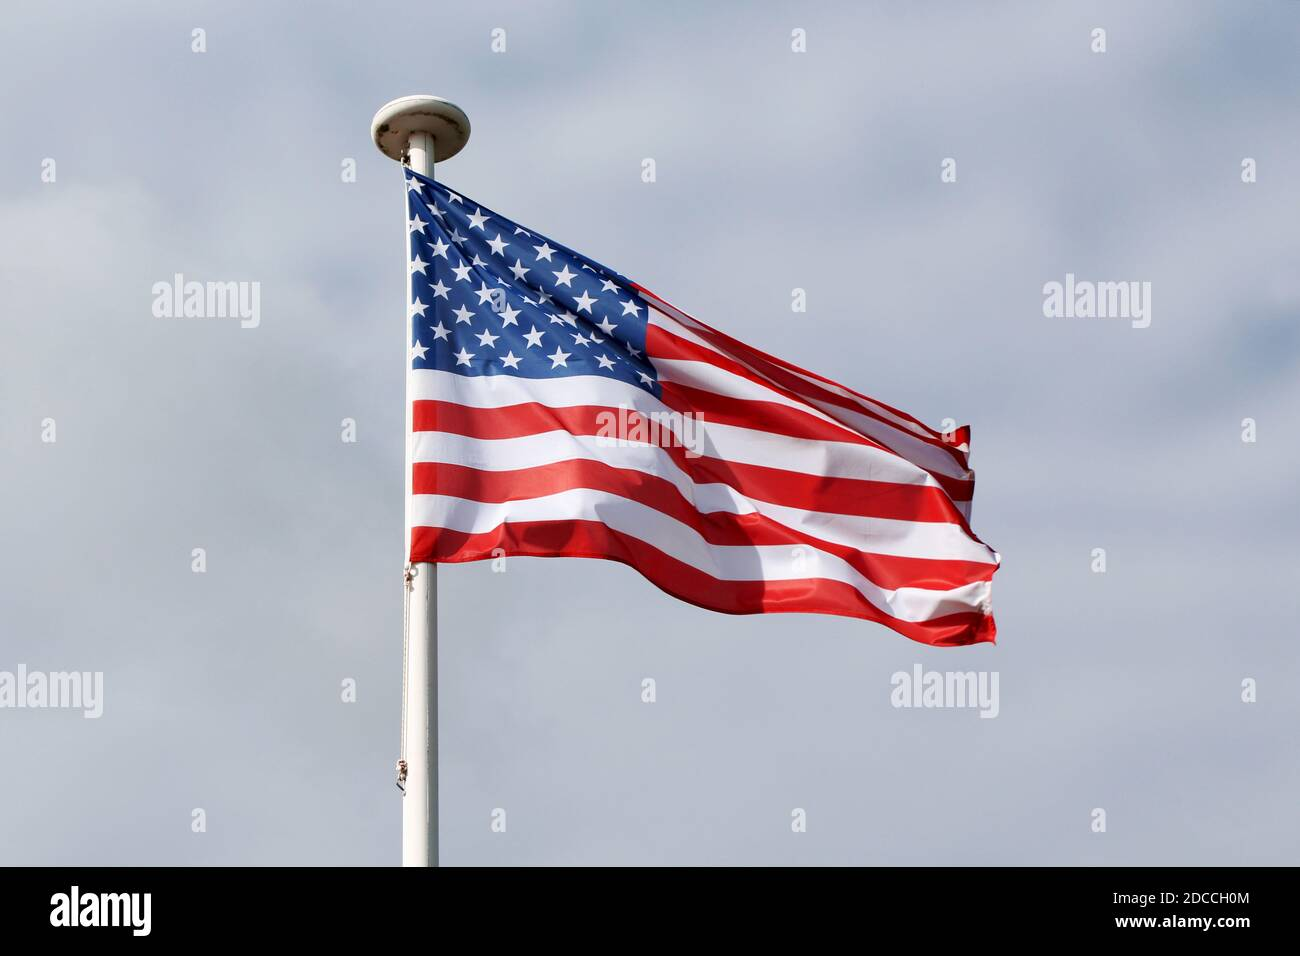 amerikanische Flagge weht im Wind Stock Photo